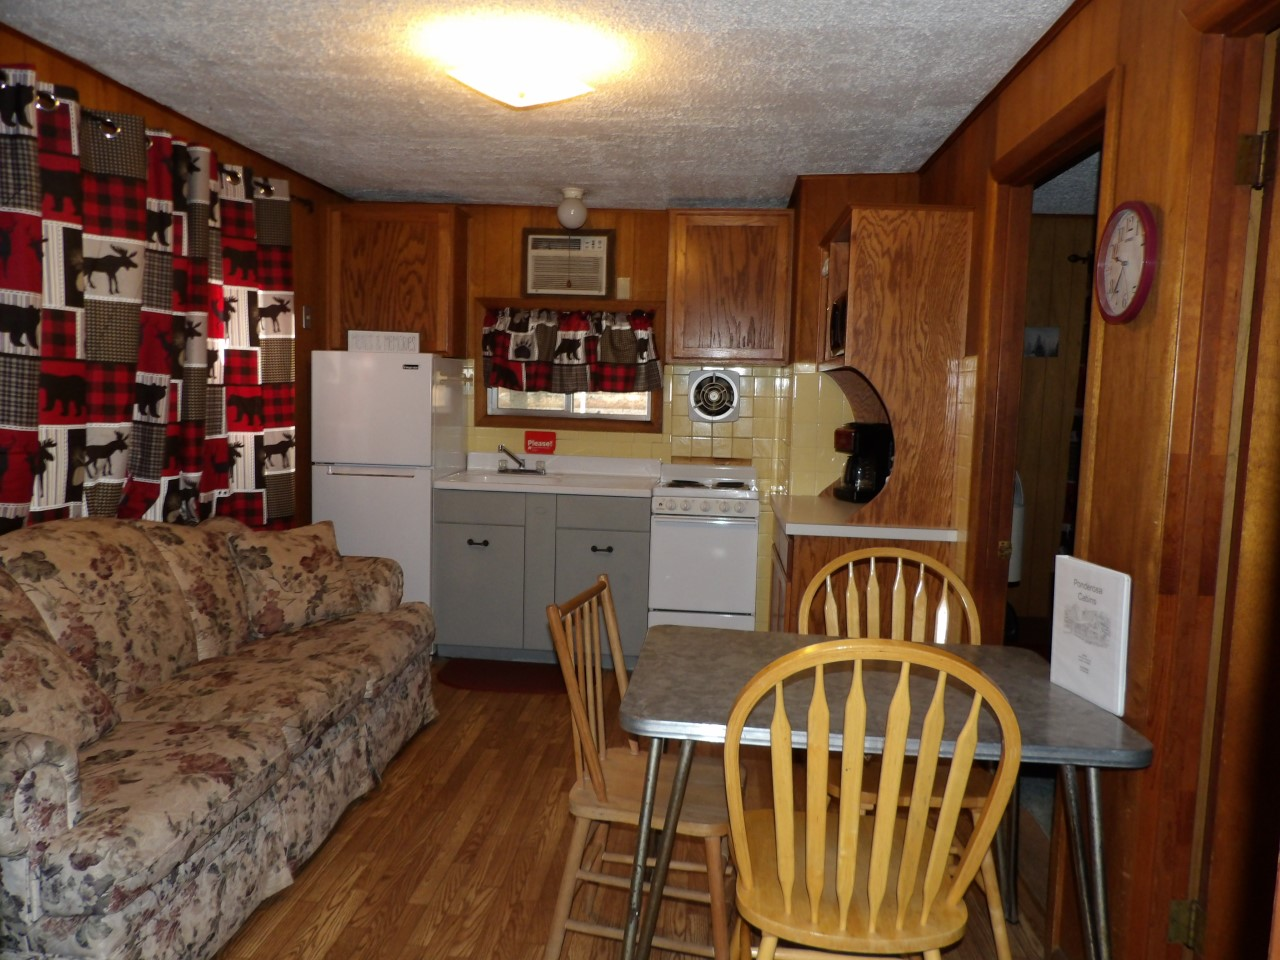 kitchen and dining room with sofa